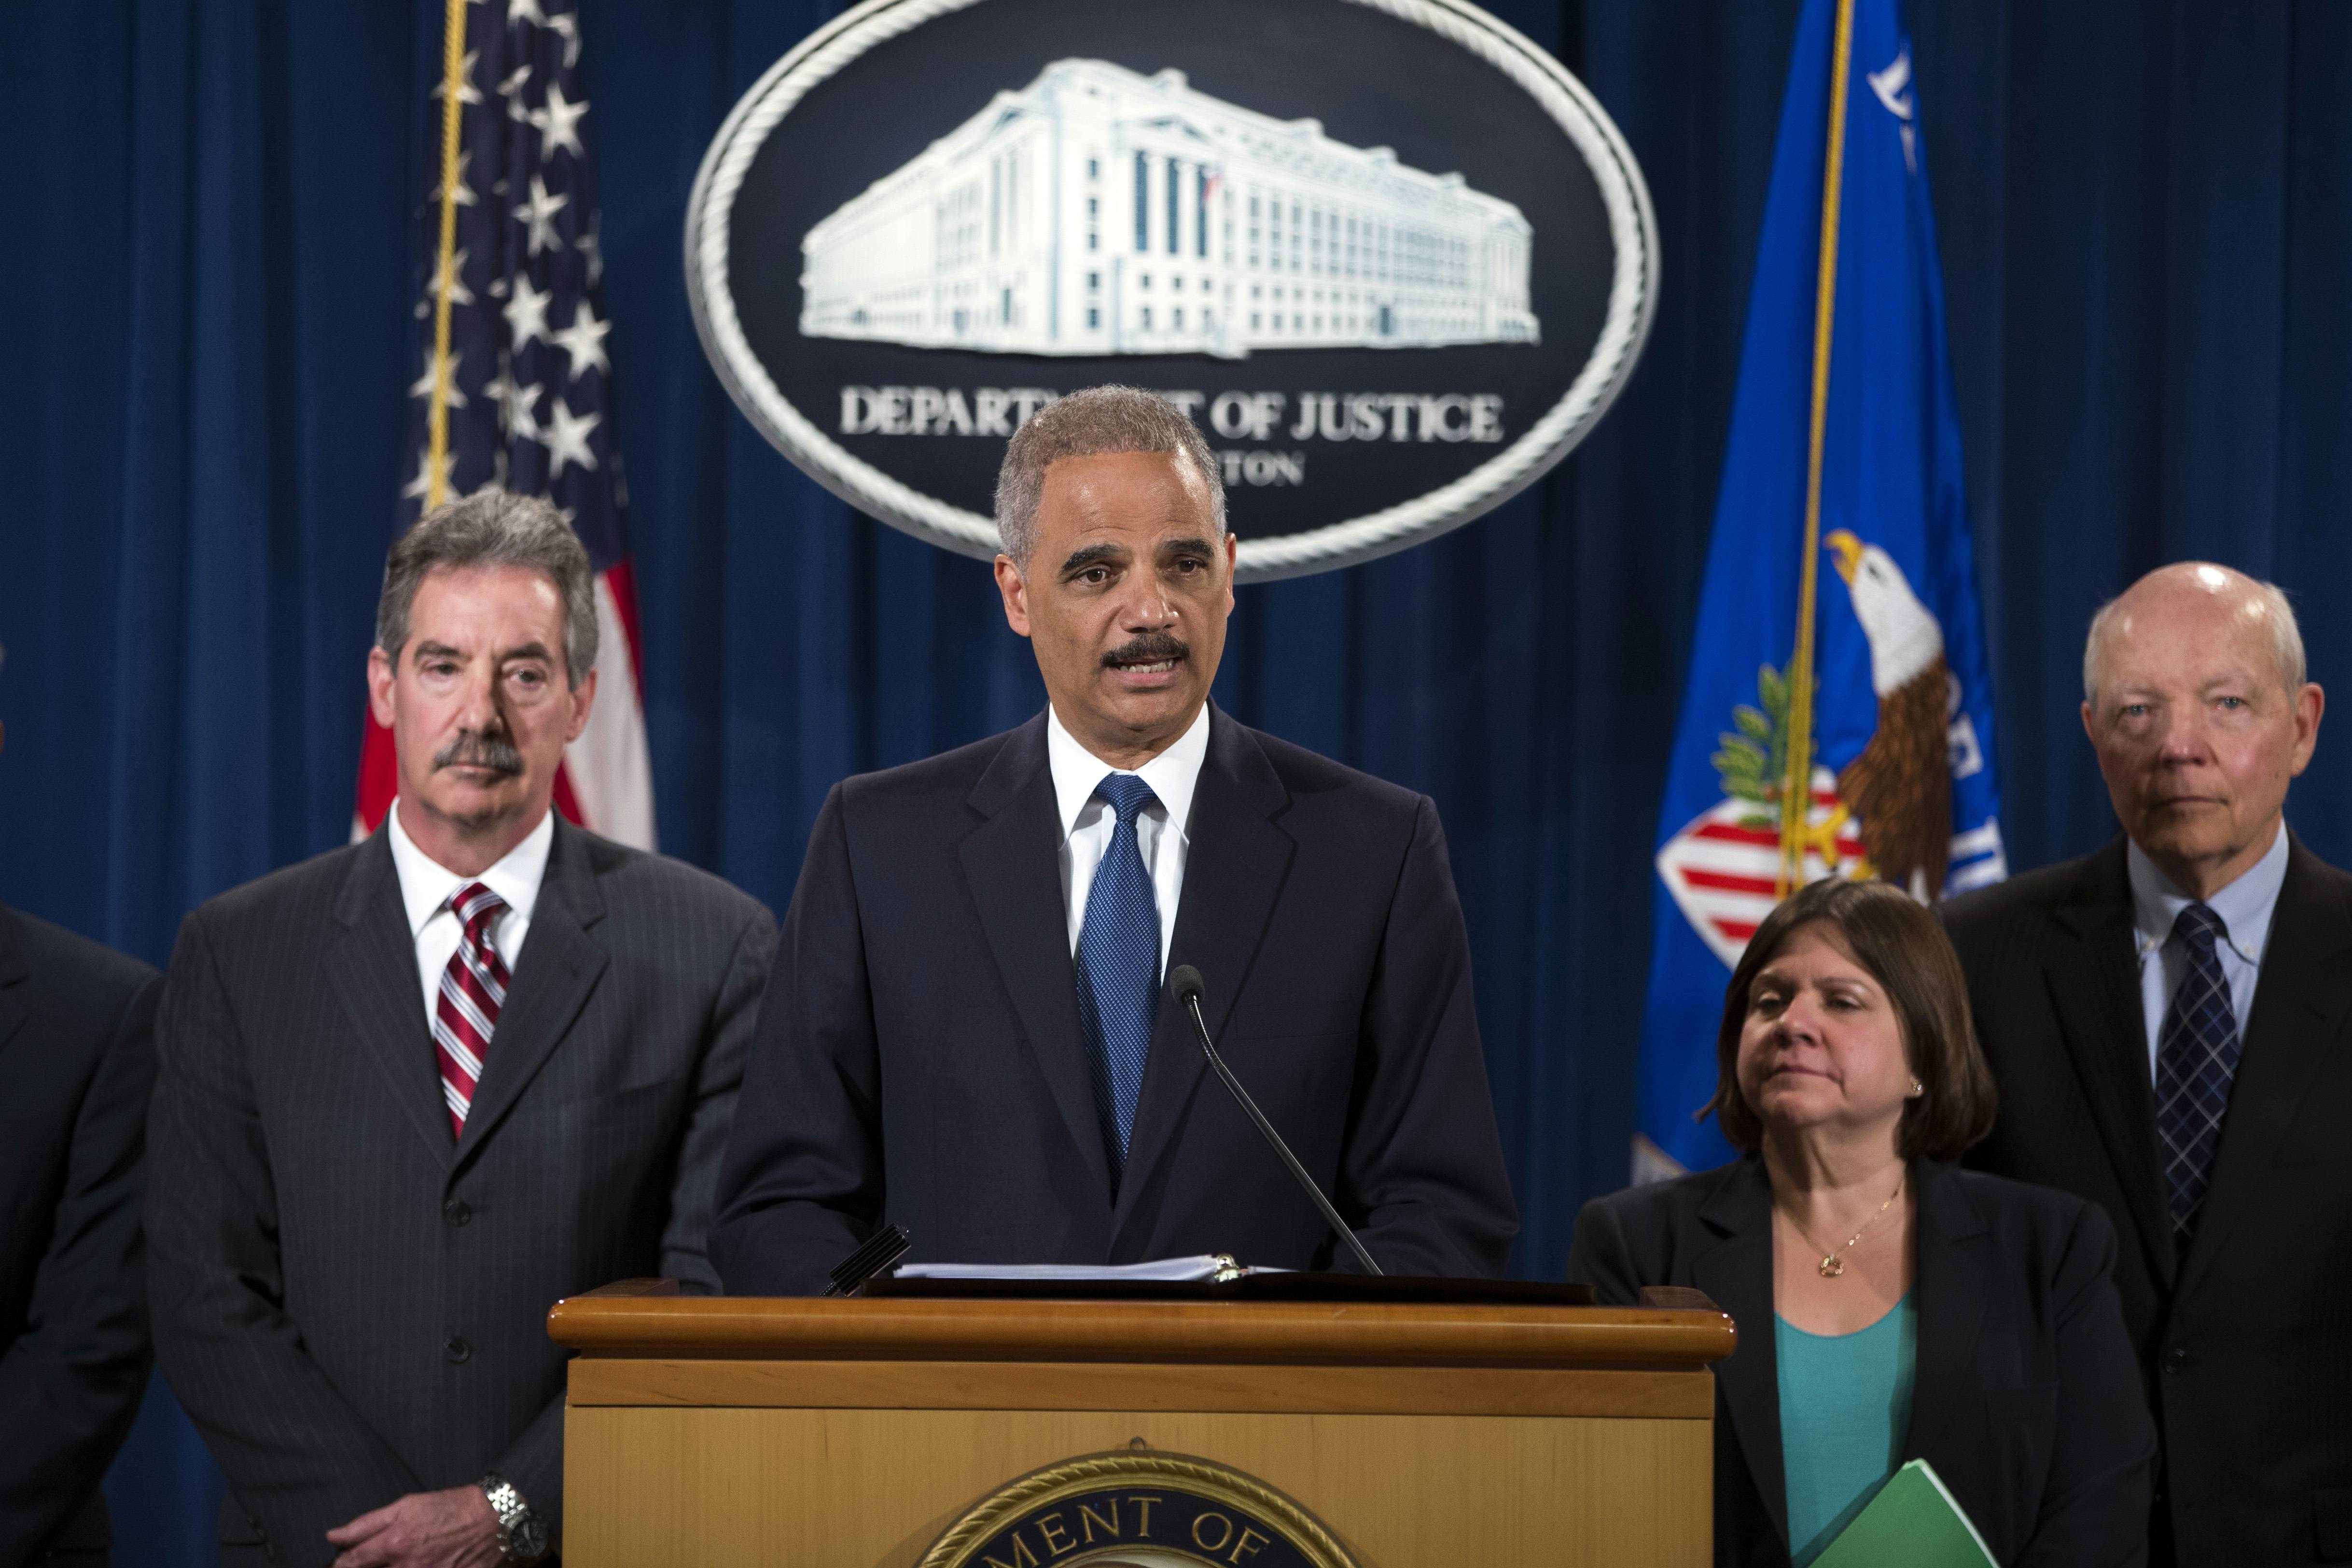 Attorney General Eric Holder, center, speaks during a news conference at the Justice Department, on Monday in Washington. The Justice Department charged Credit Suisse AG with helping wealthy Americans avoid paying taxes through offshore accounts, and a person familiar with the matter said the European bank has agreed to pay about $2.6 billion in penalties. From left, Deputy Attorney General James Cole, Holder, Assistant Attorney General for the Tax Division Kathryn Keneally, and IRS Commissioner John Koskinen